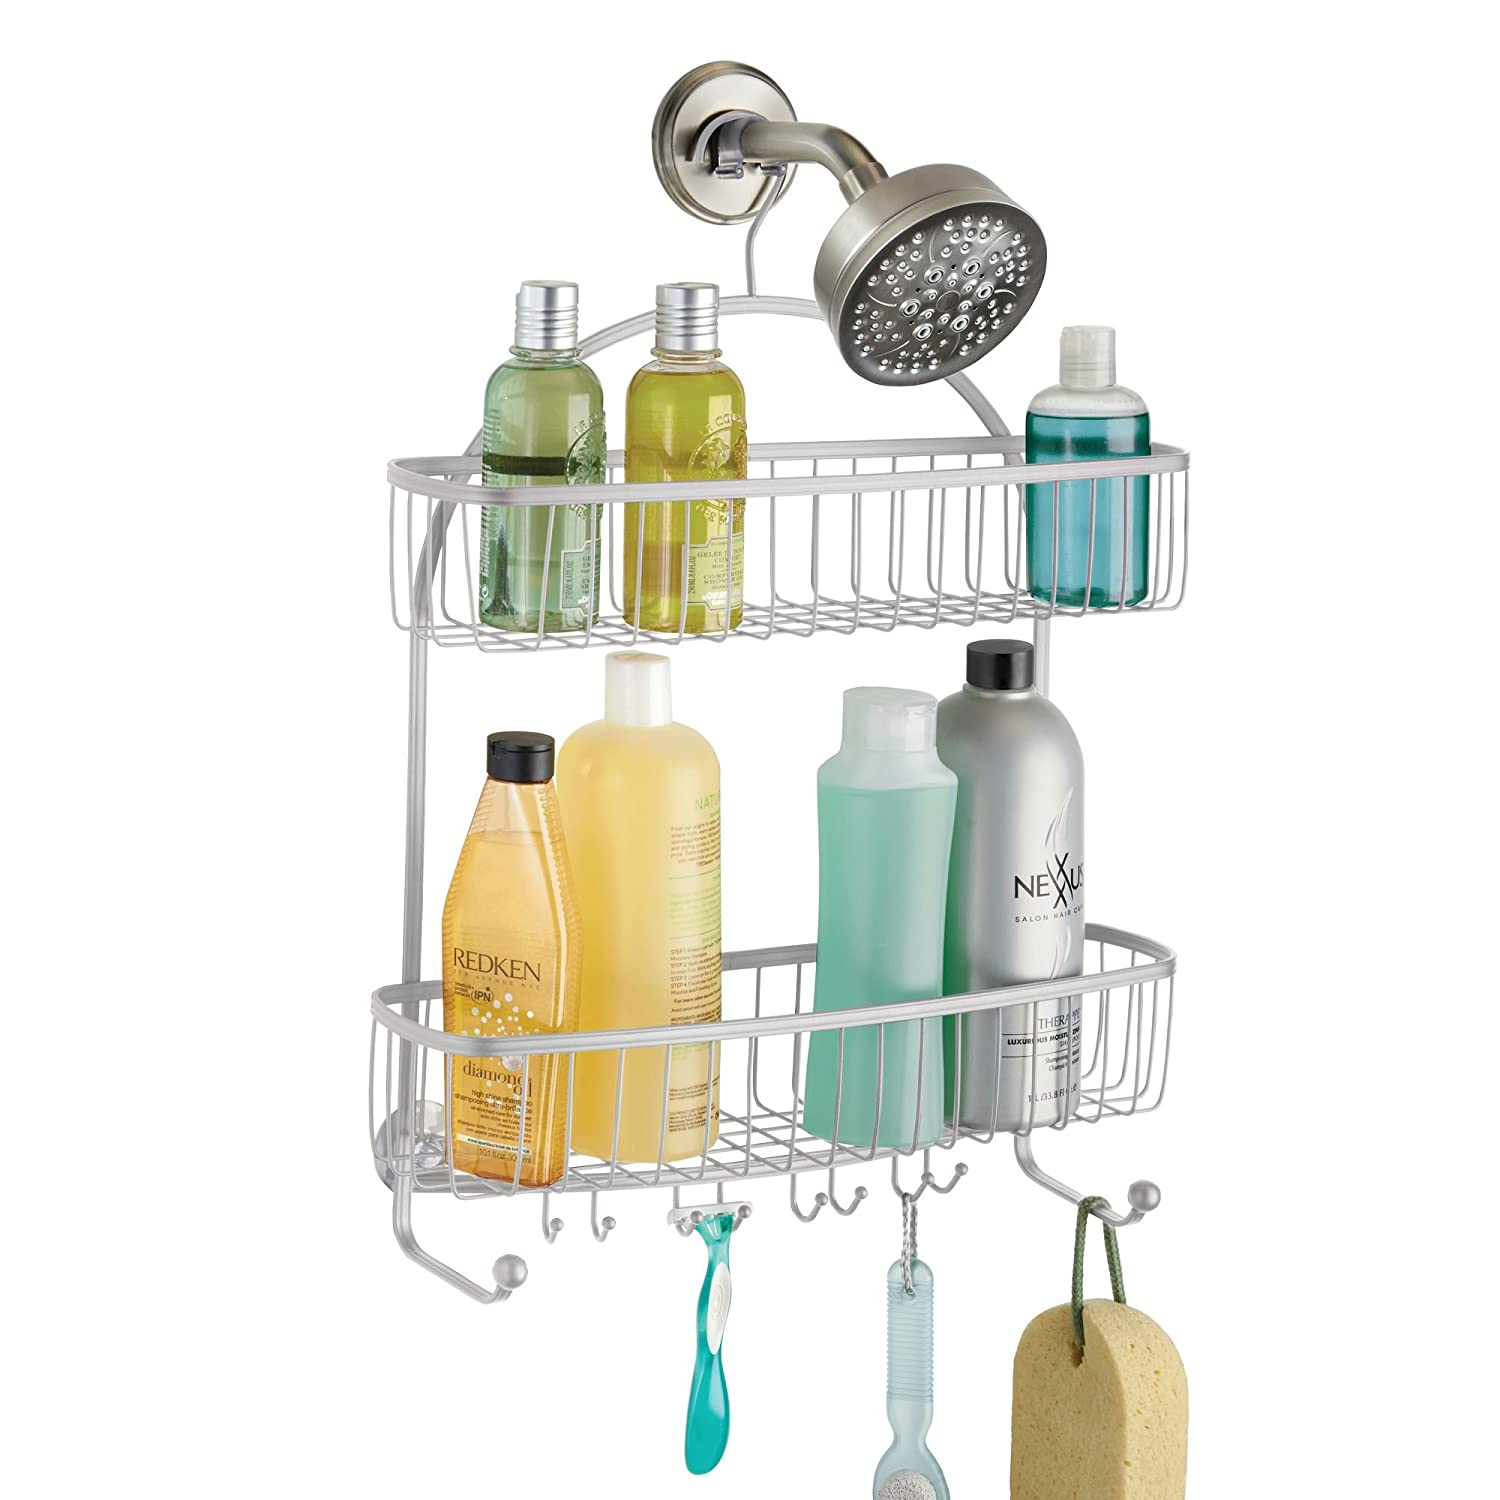 mDesign Over Door Shower Caddy - Practical Shower Shelves - No Drilling Required - Stainless Steel Hanging Shower Baskets for your Shower Accessories (Shampoo, Razors, and More) - Bronze MetroDecor 2303MDBST